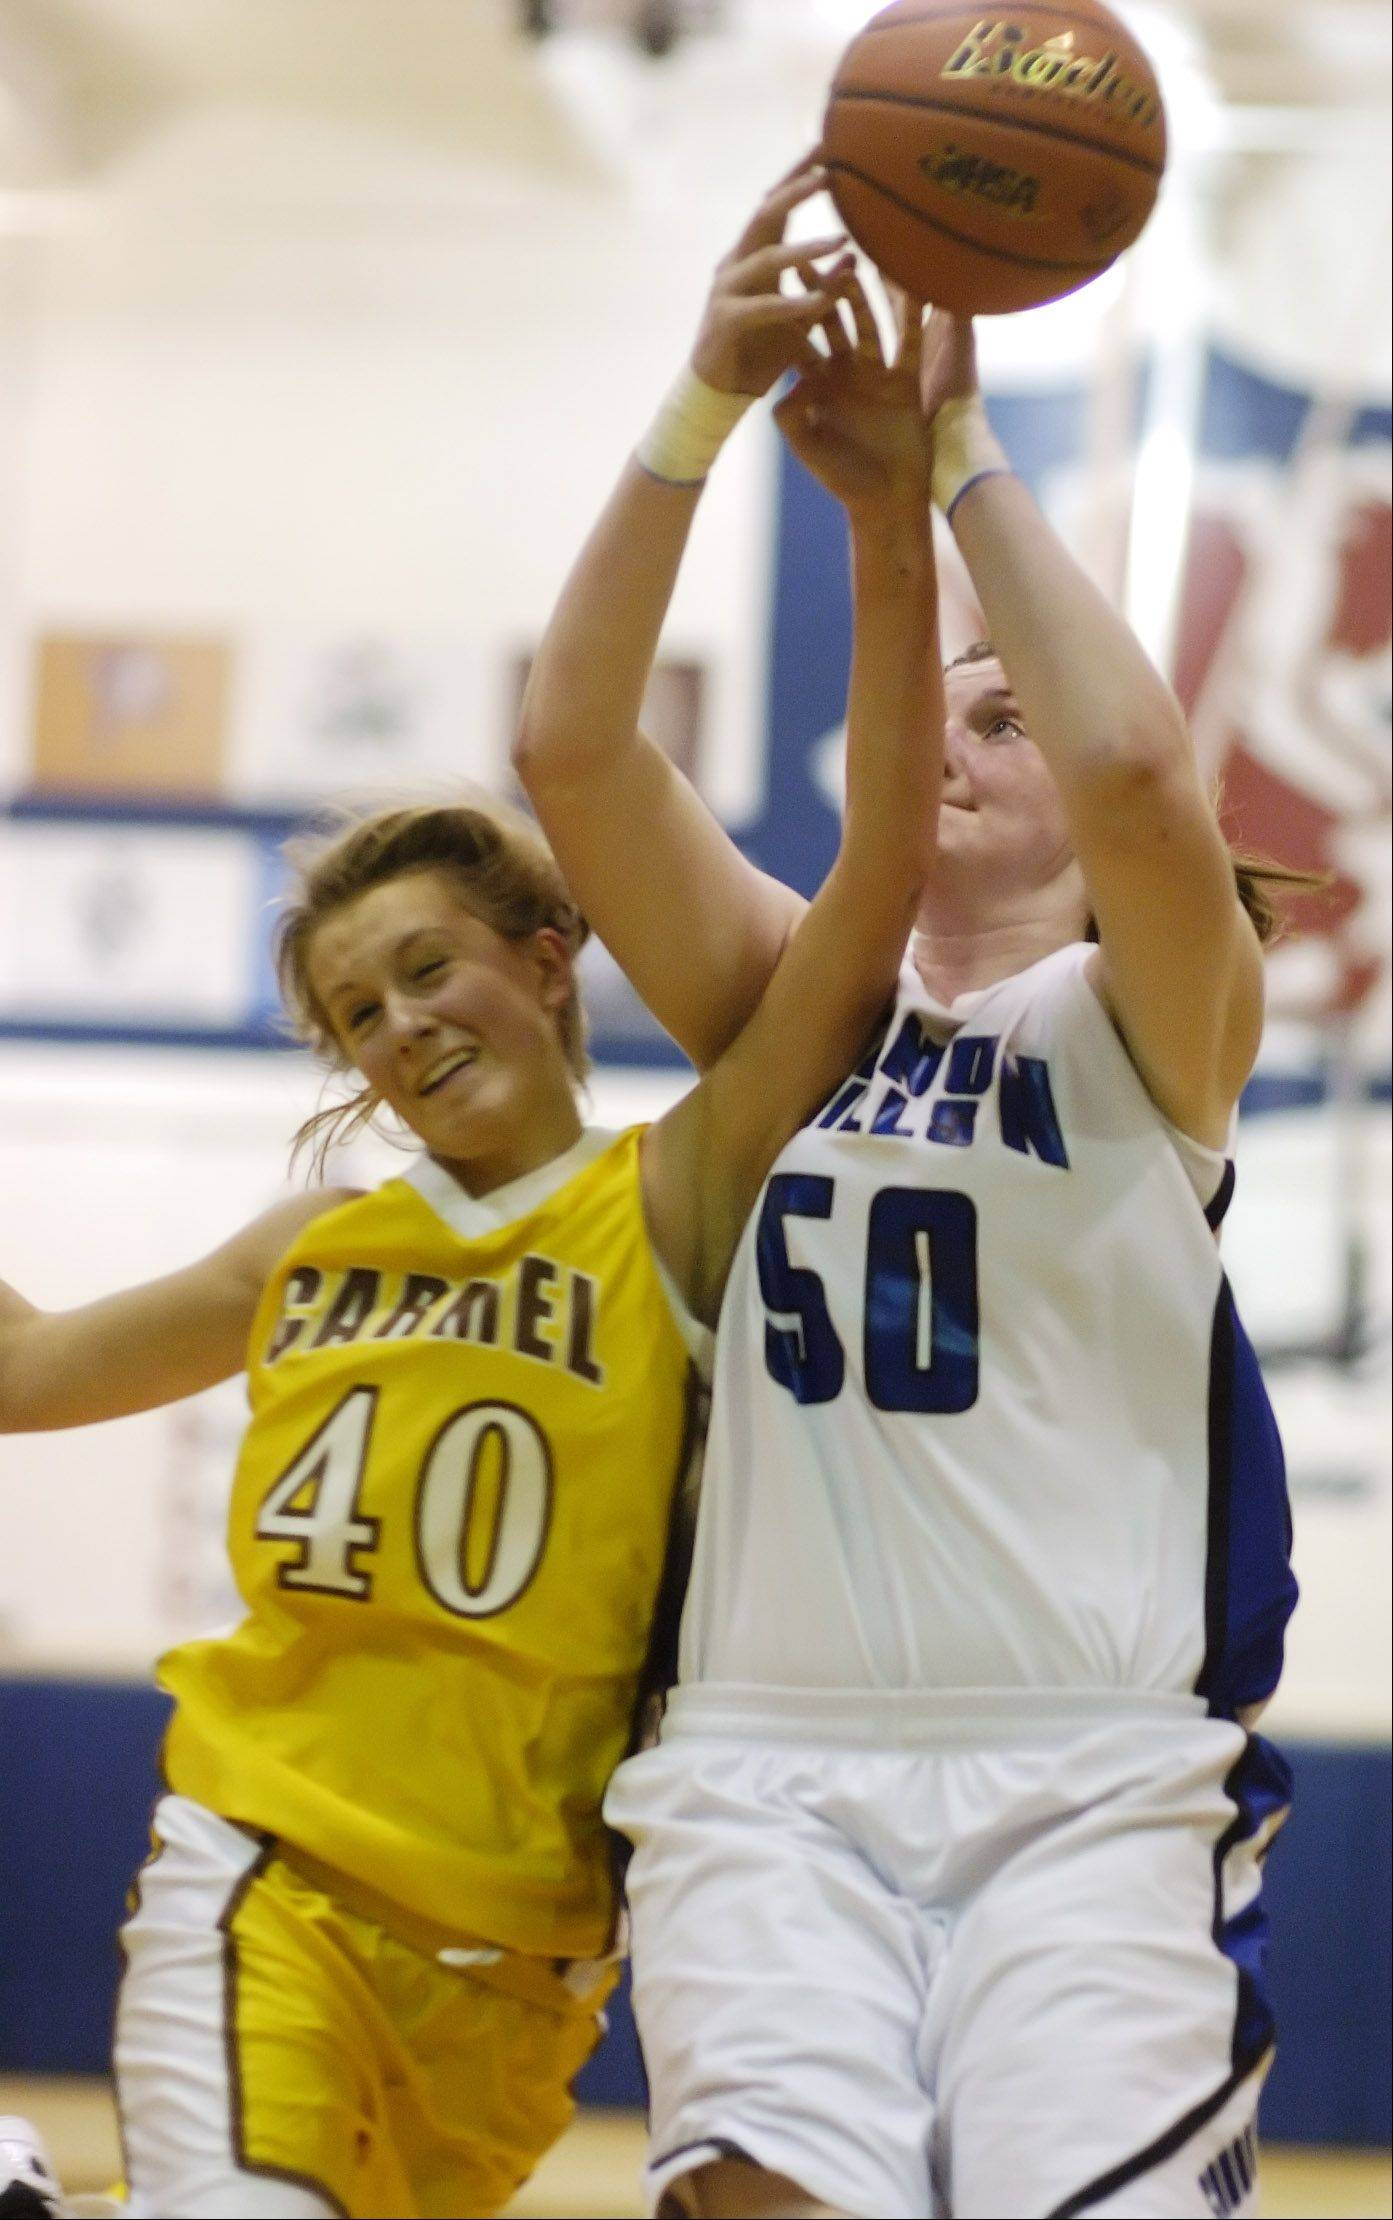 Carmel's Leah Lach, left, and Vernon Hills' Meri Bennett-Swanson make contact.